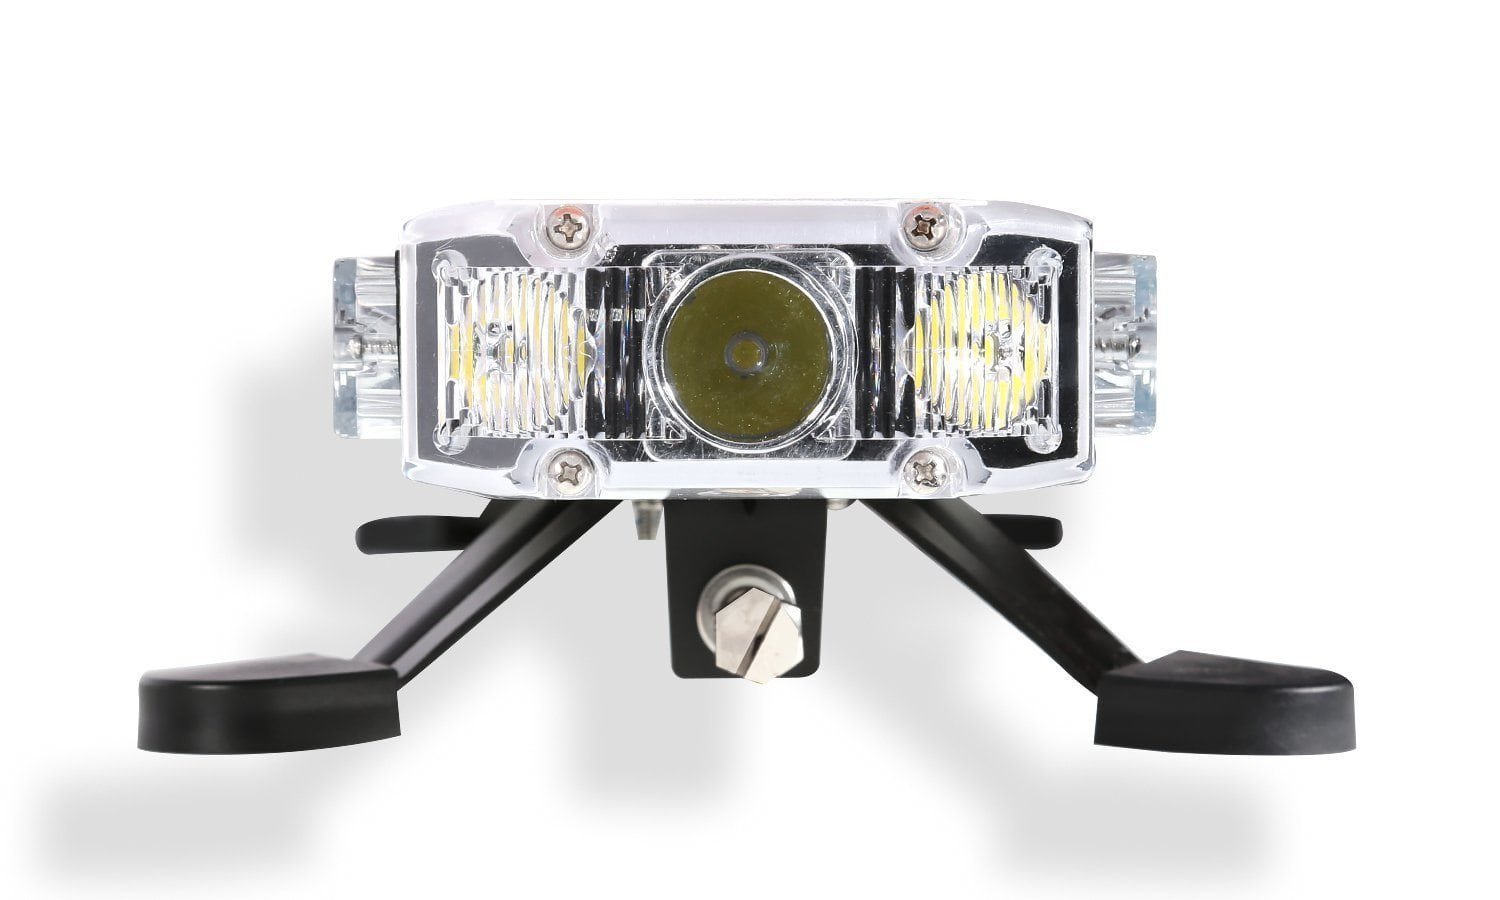 p 69 a 1183_4_1 emergency led light bar  at mifinder.co